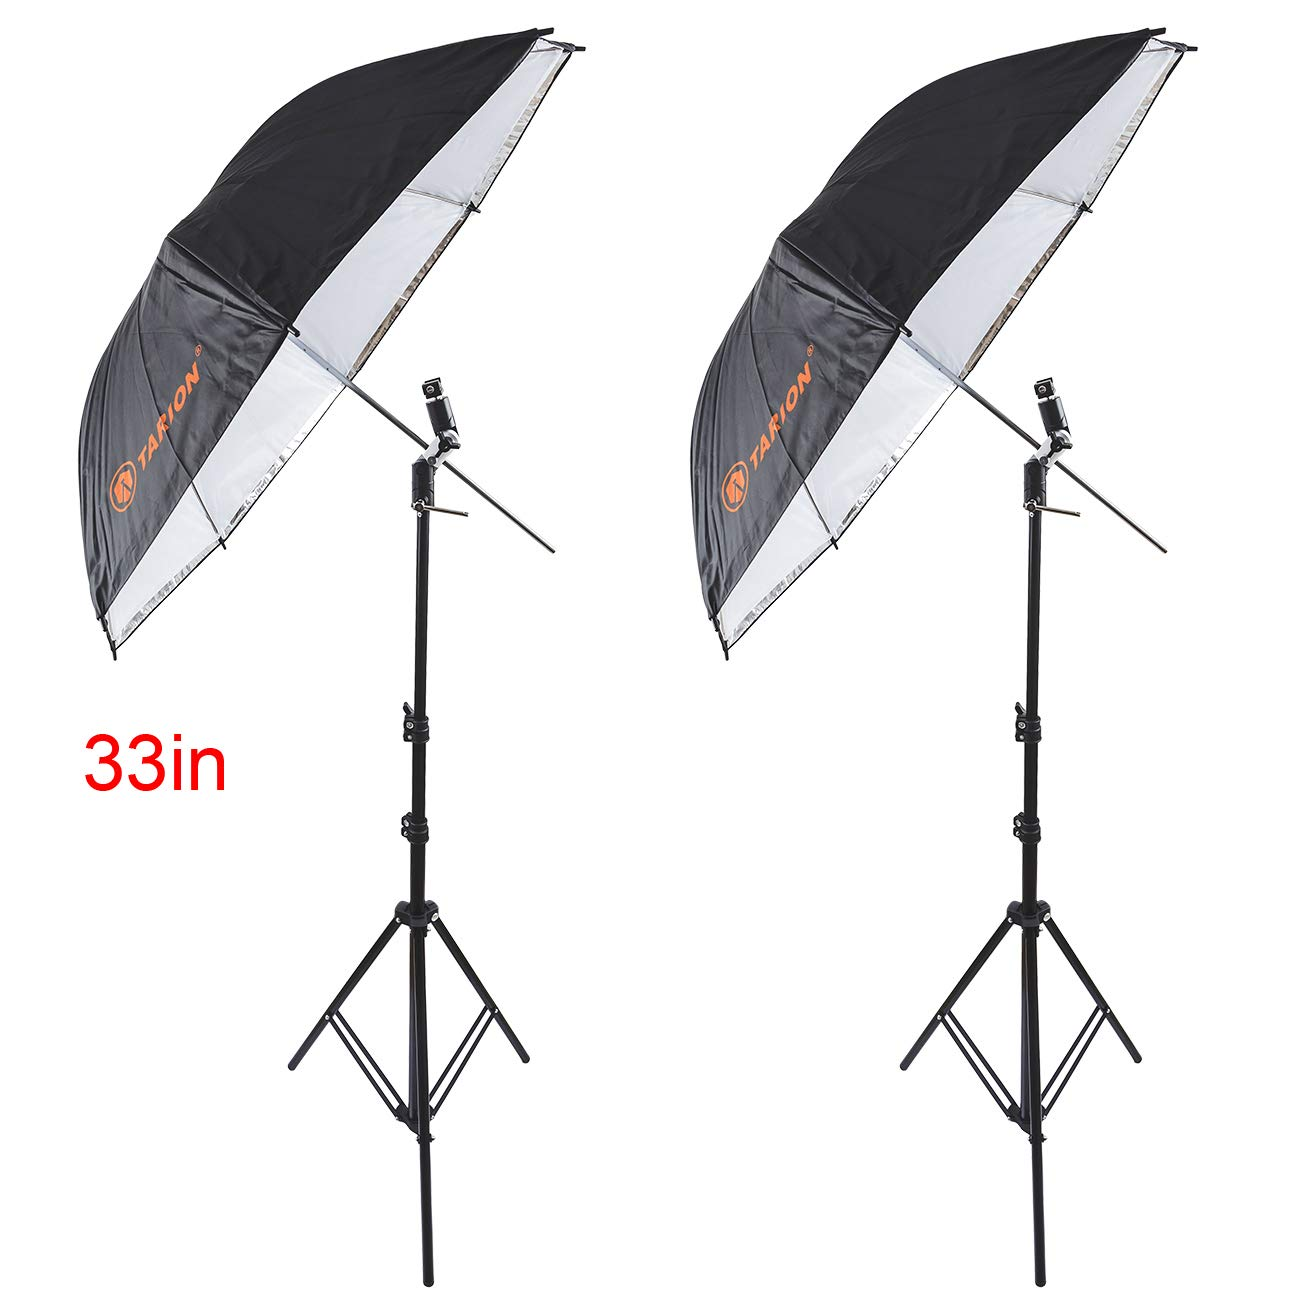 TARION 33inch 2in1 Reflective Umbrella and Light Stand with Swivel Bracket & Shoe Mount Adapter Kit